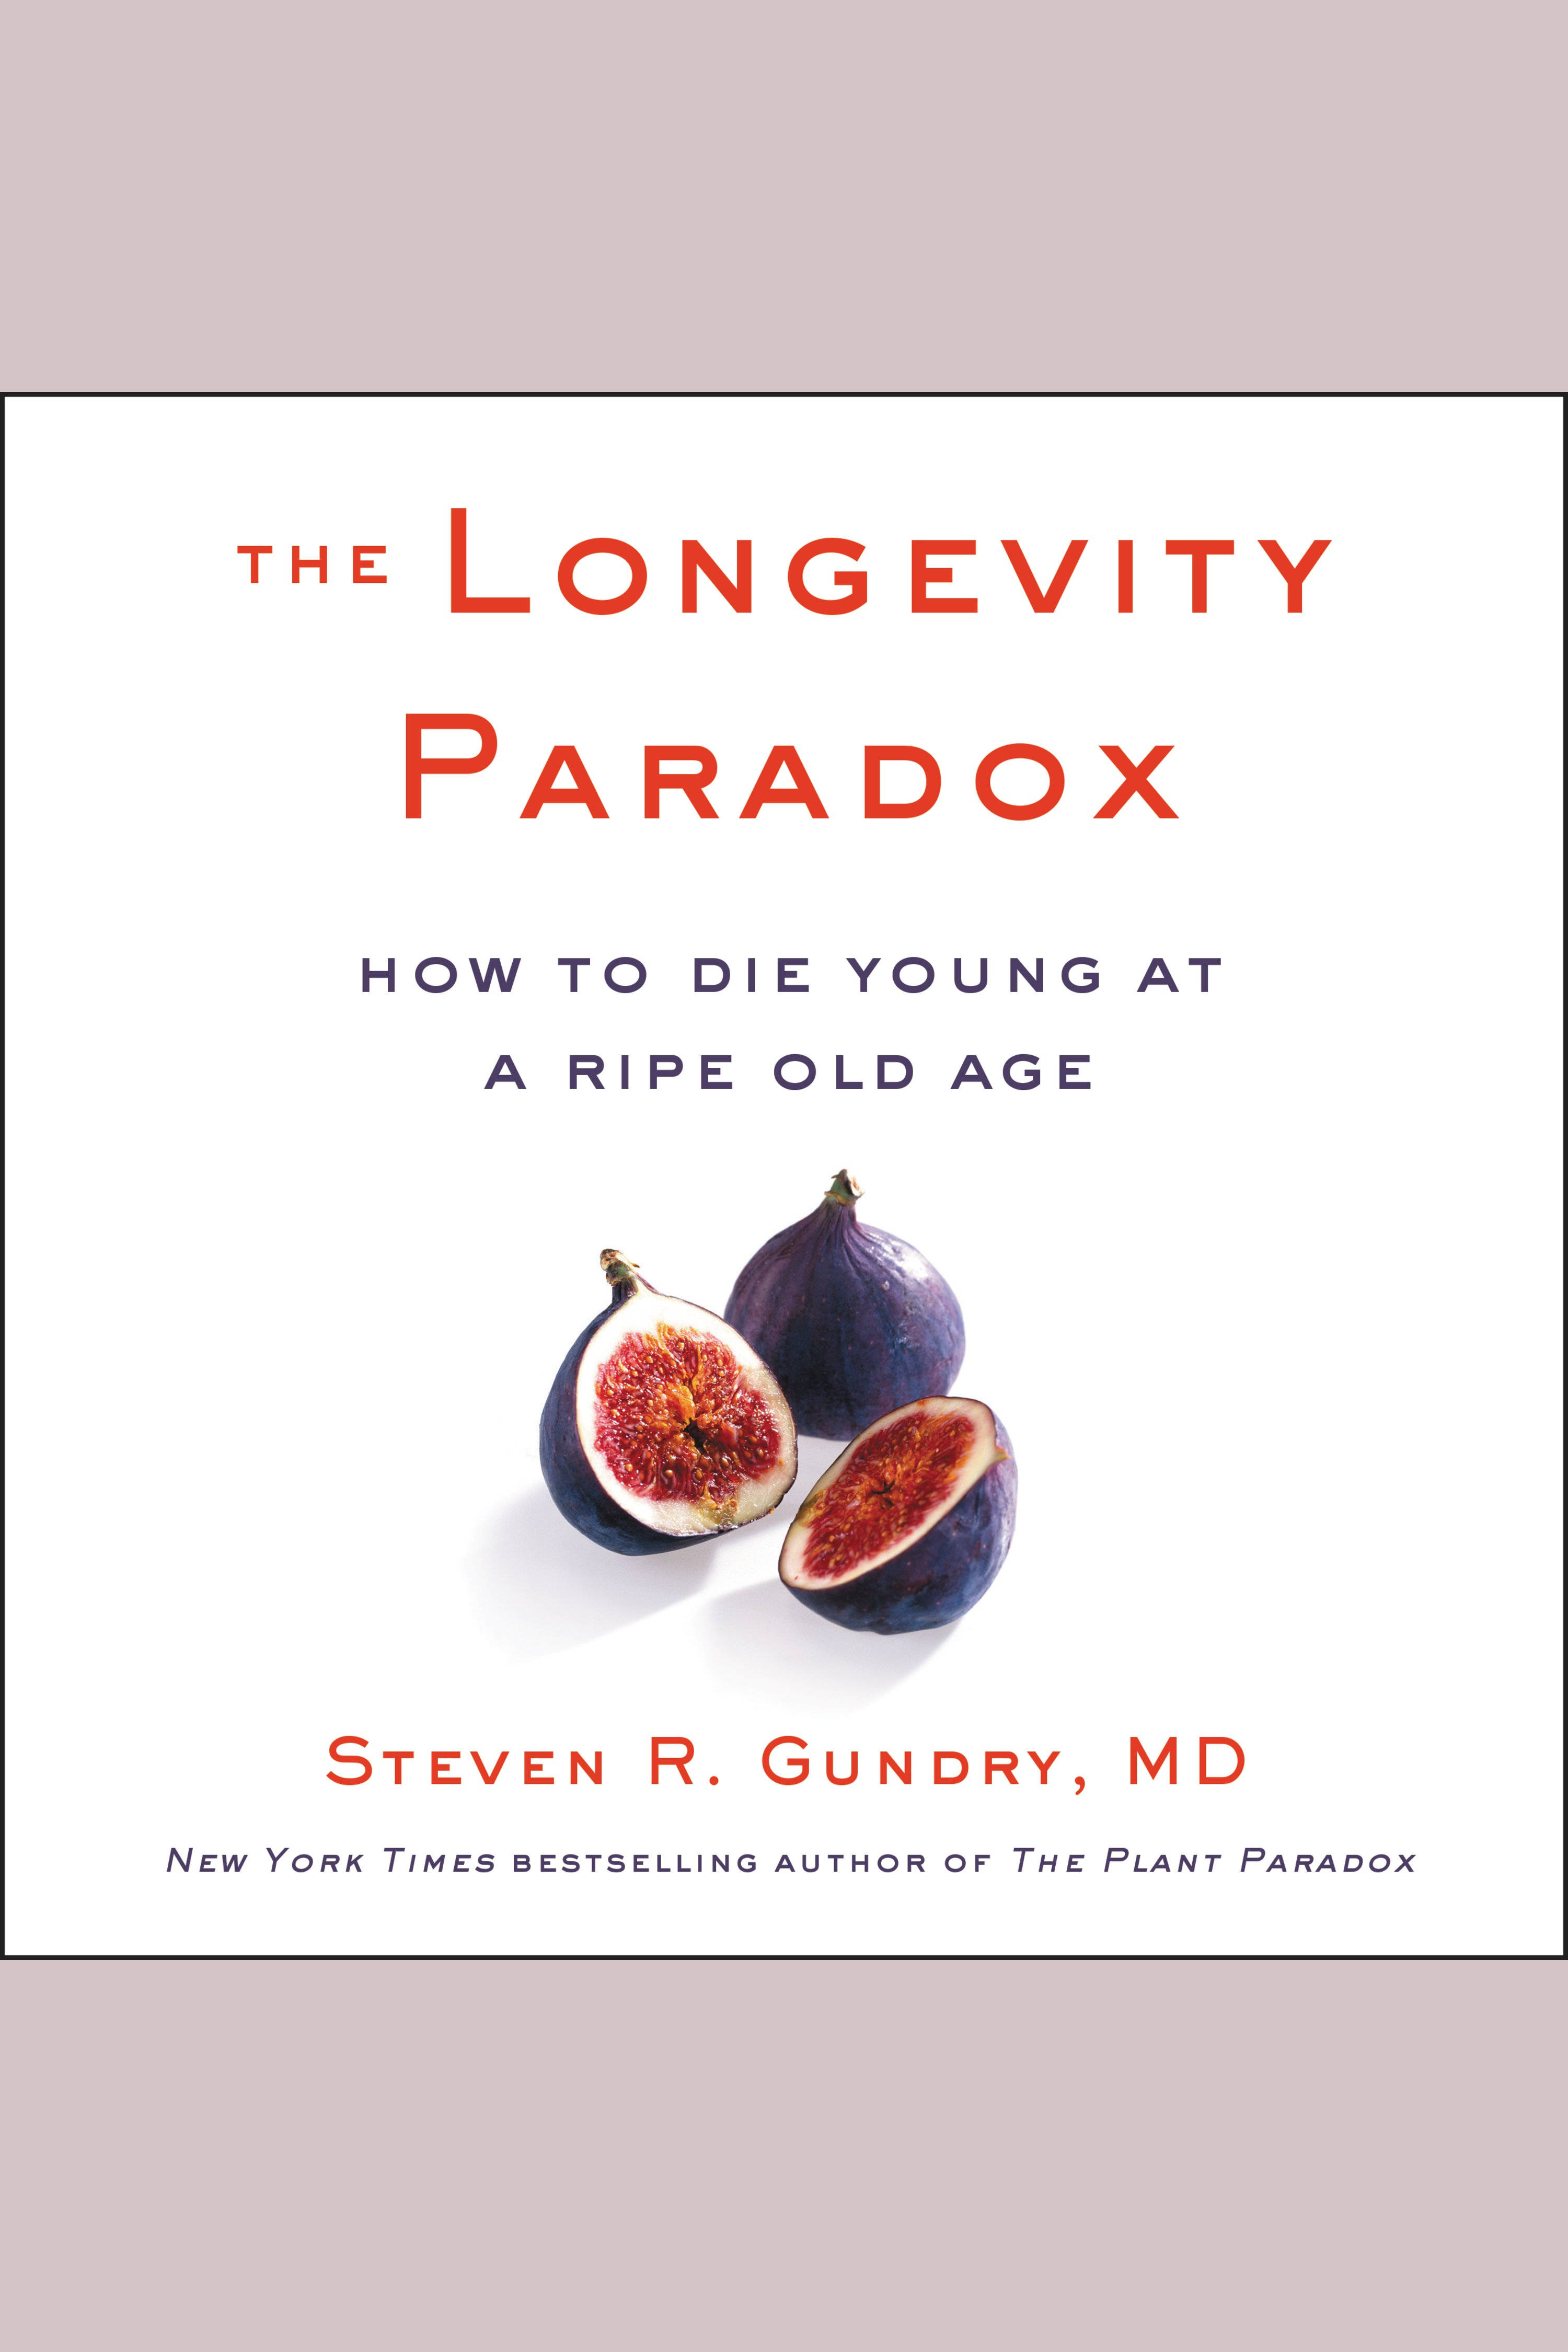 The Longevity Paradox:How to Die Young at a Ripe Old Age